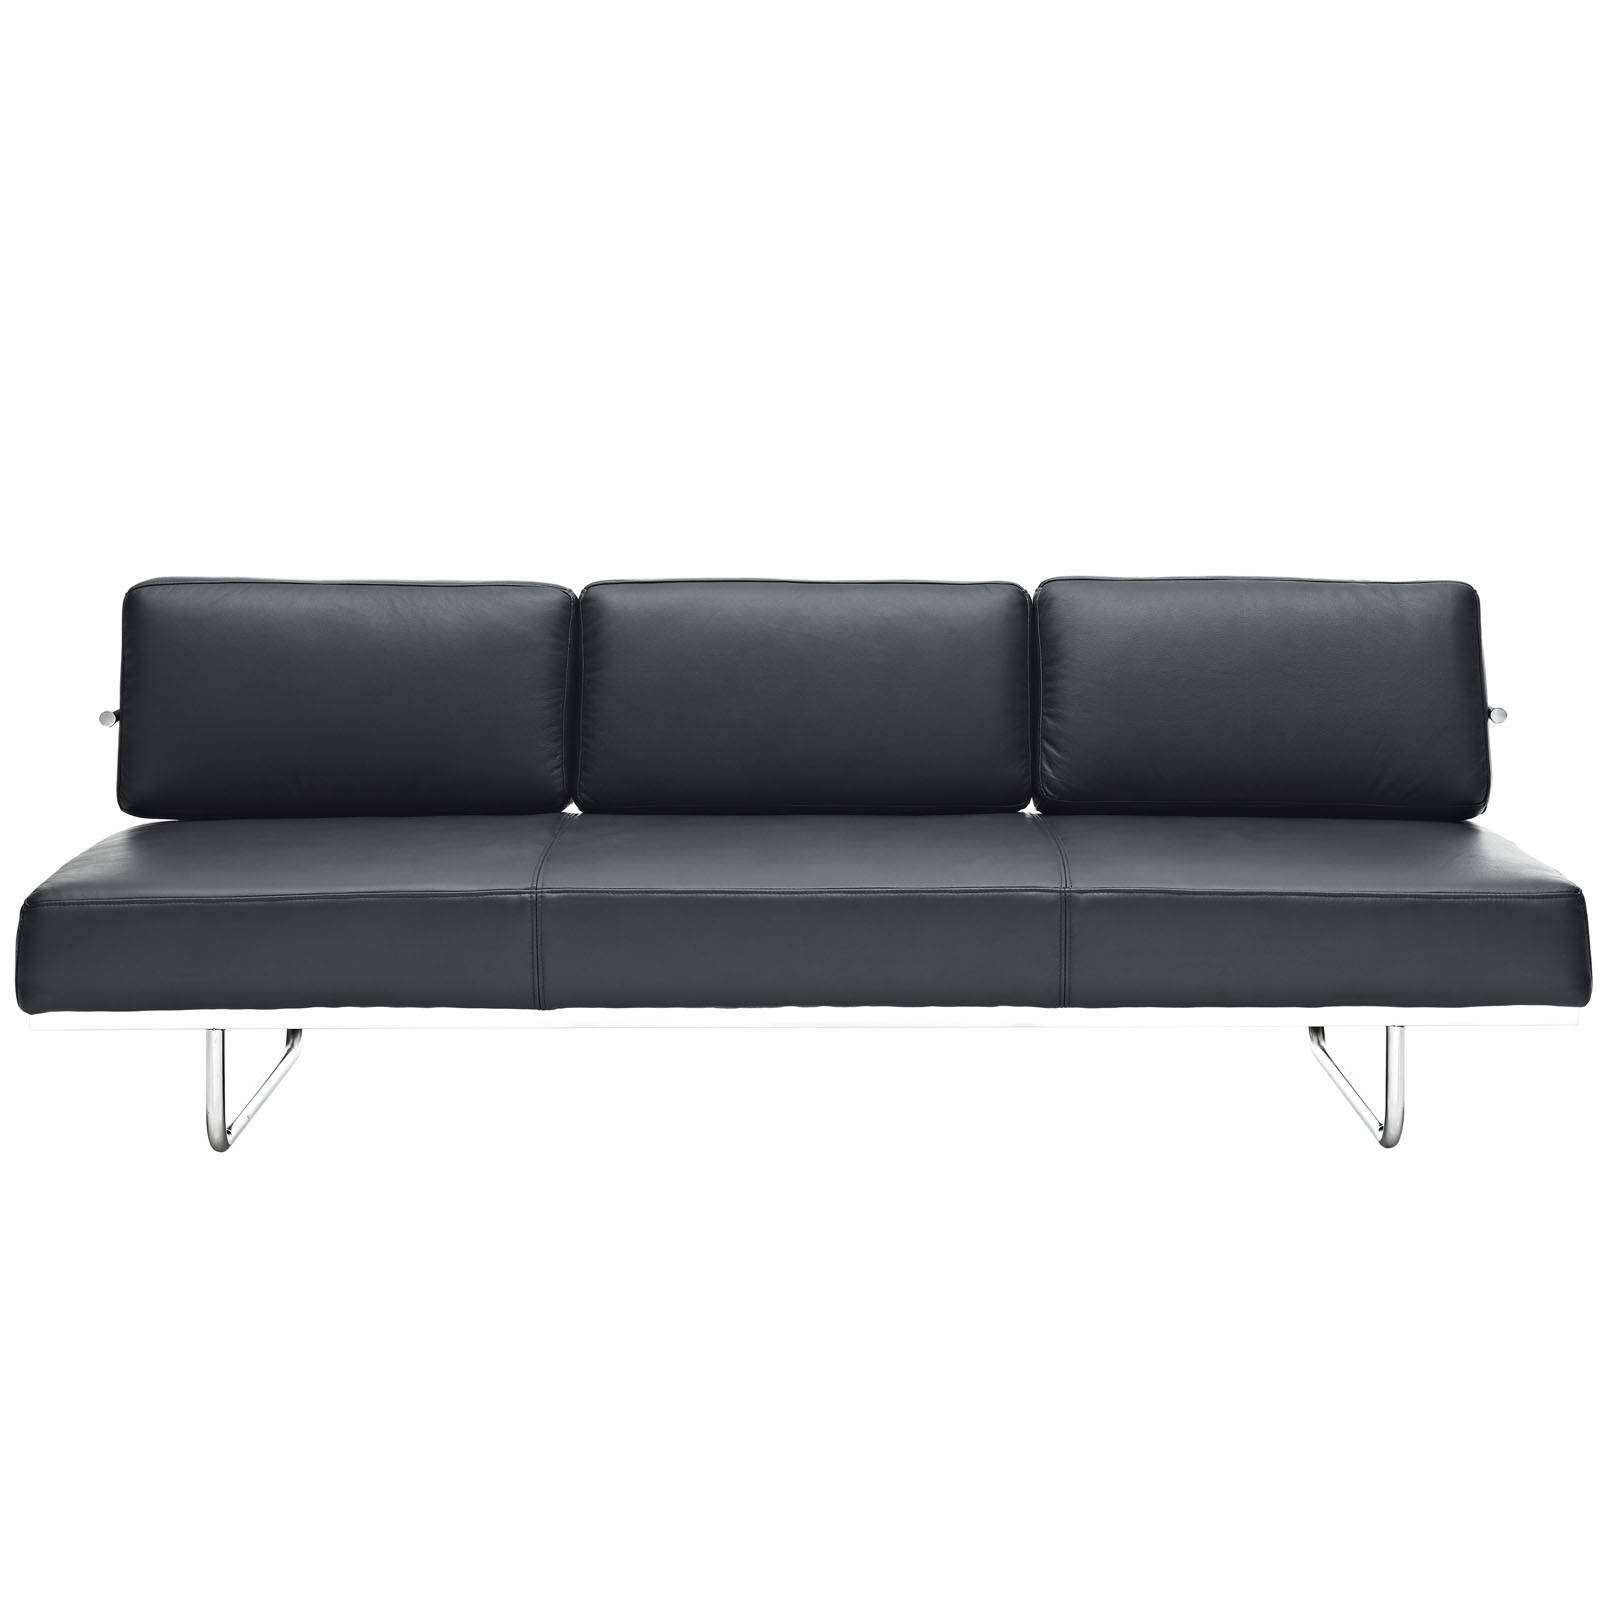 Le corbusier style lc5 sofa daybed for Le corbusier sofa nachbau